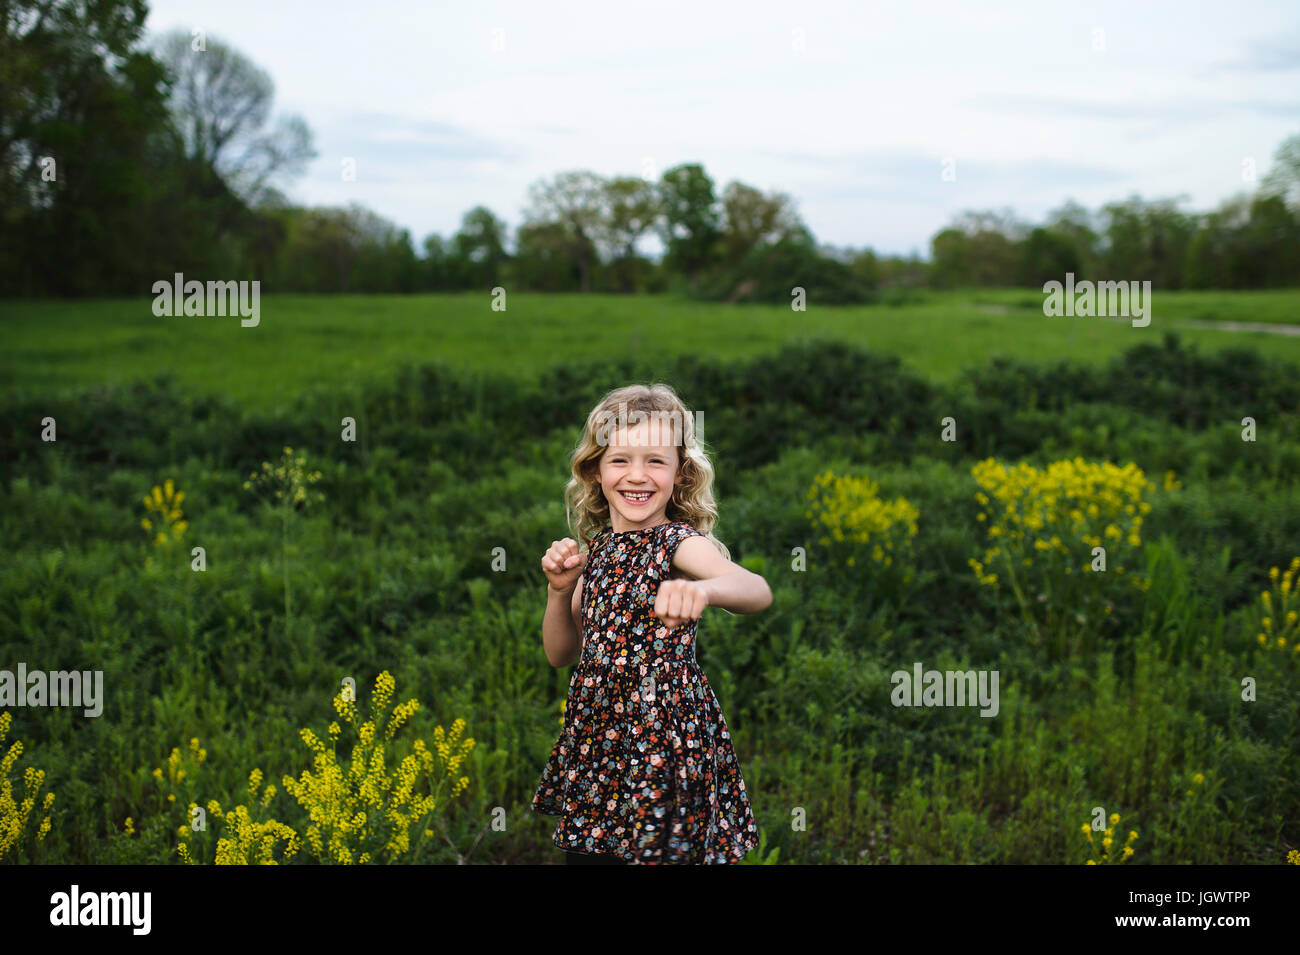 Portrait of girl with wavy blond hair punching in field - Stock Image